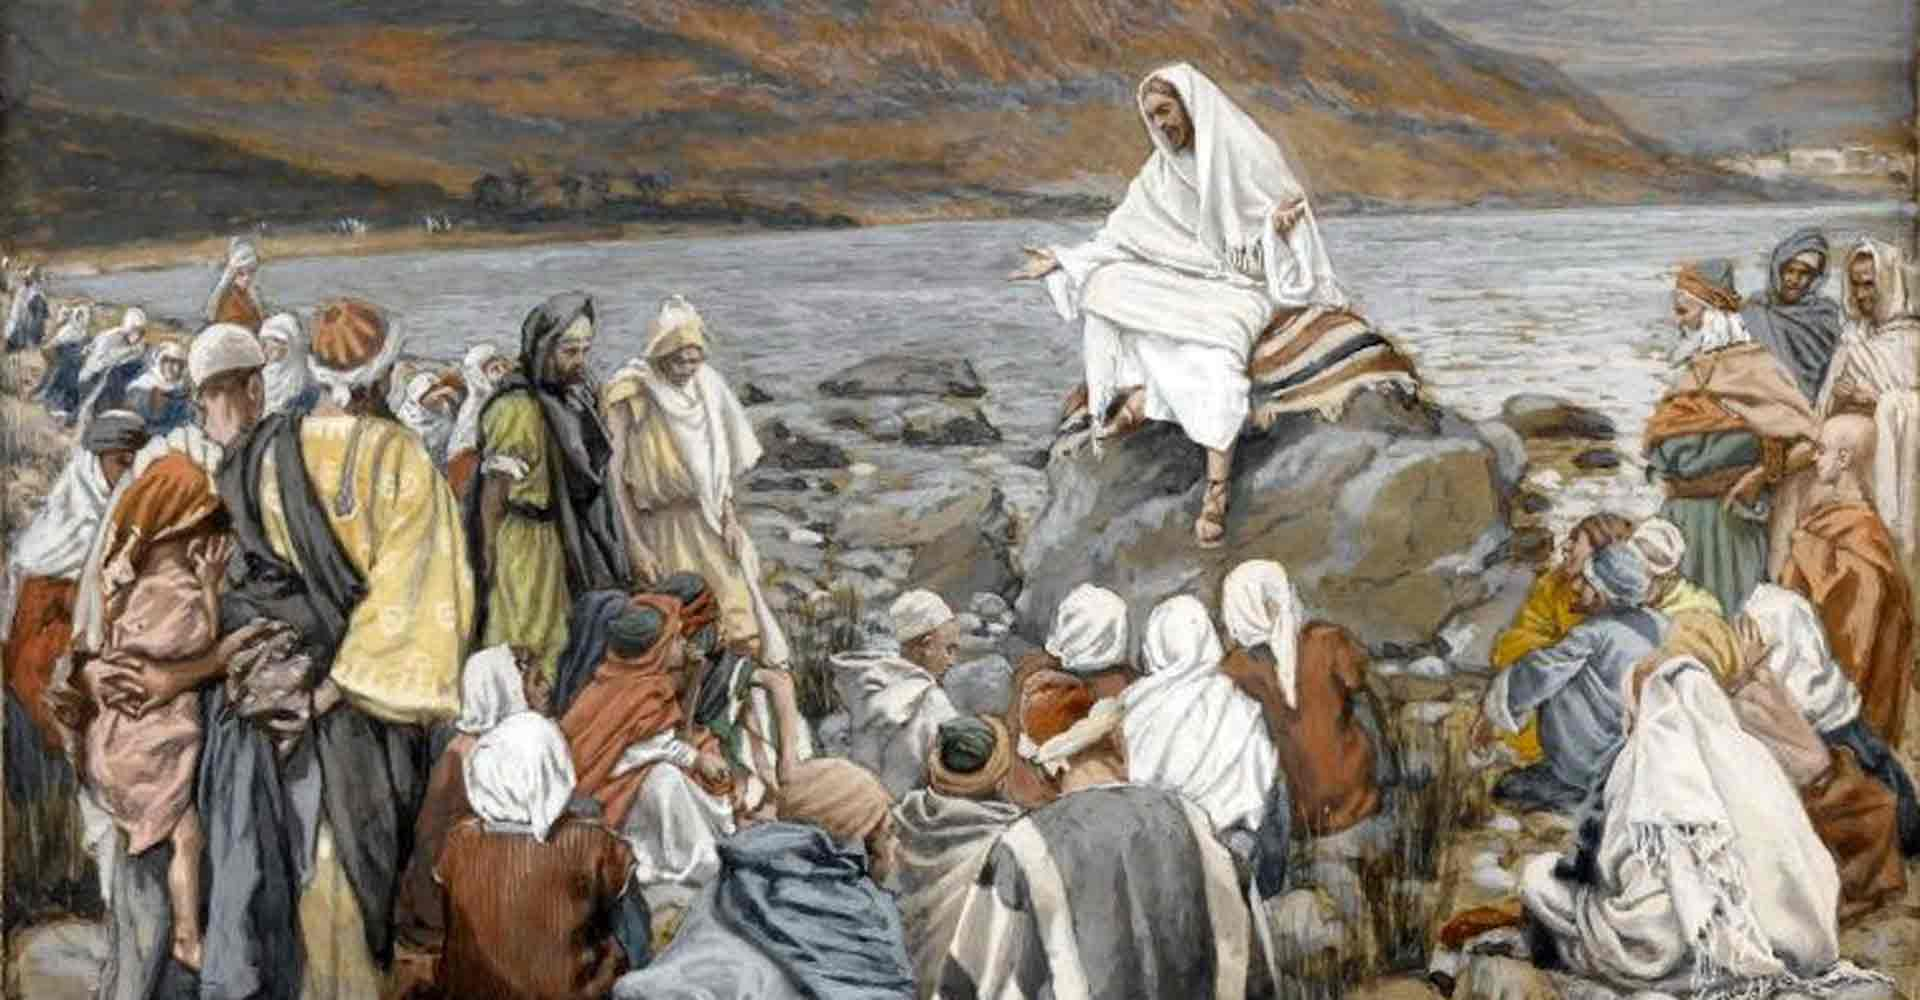 Jesus teaches the crowds by the sea